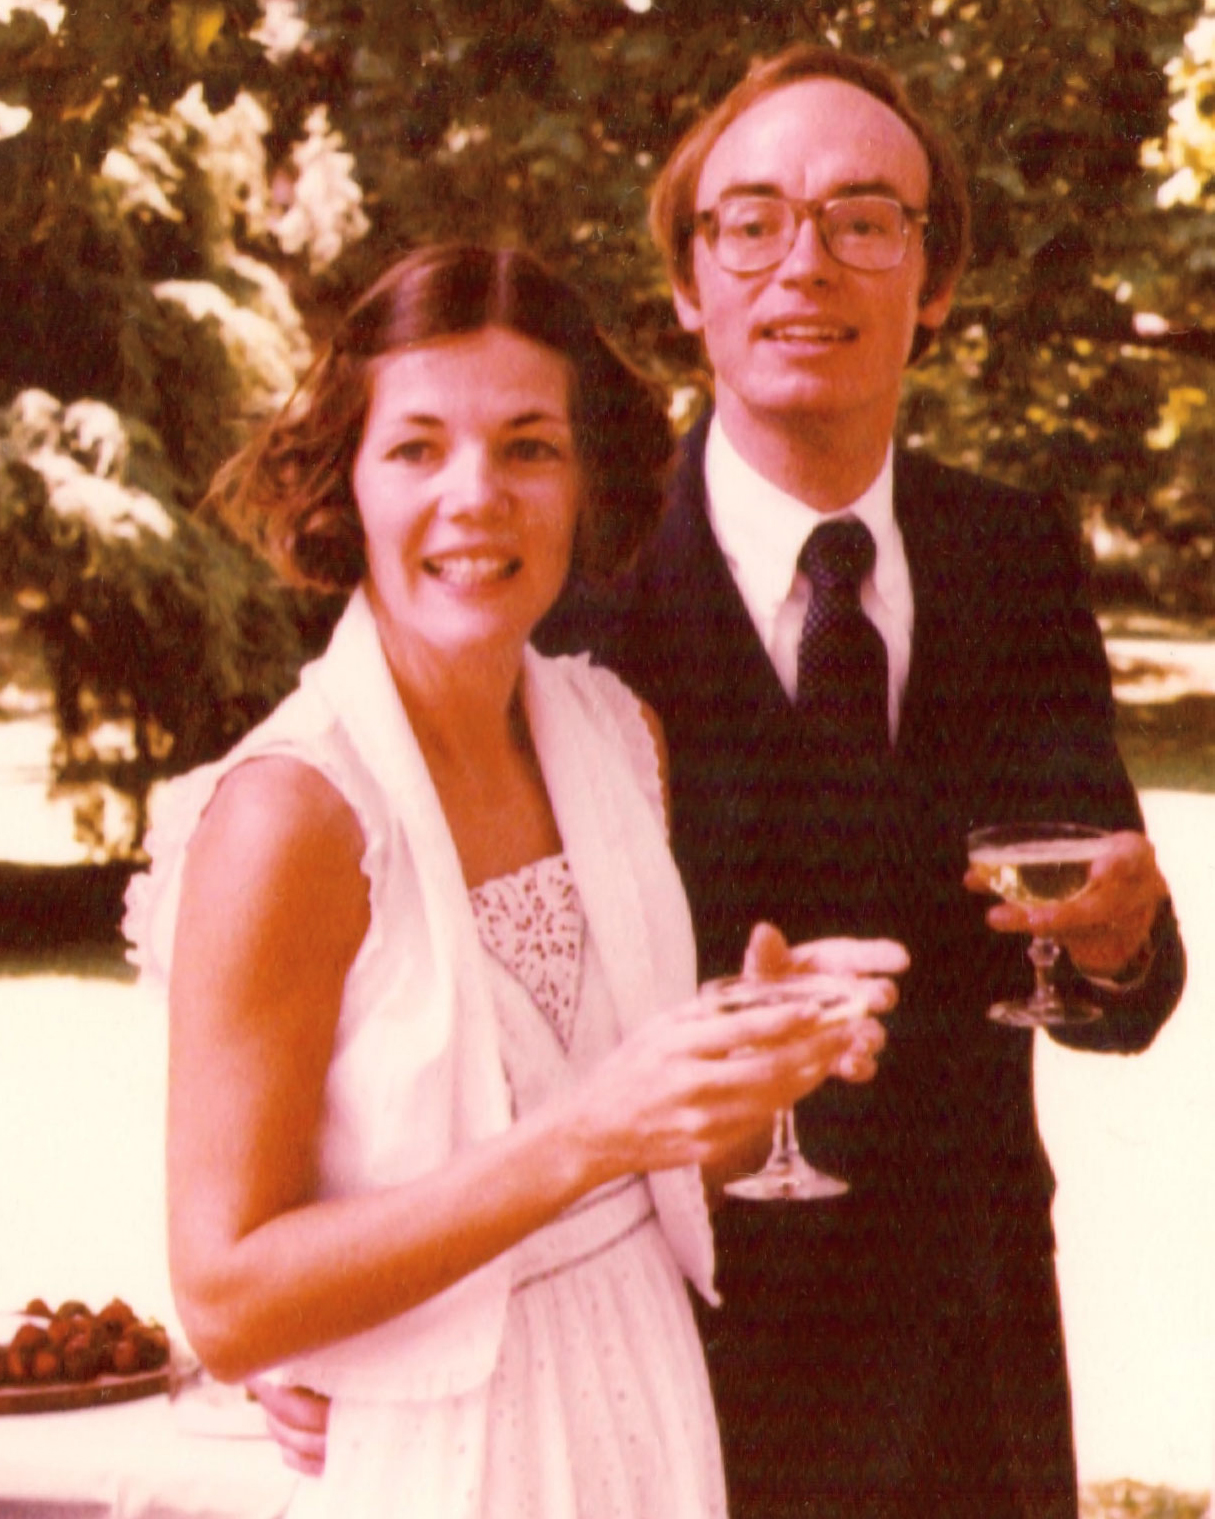 Warren on her wedding day in 1980, with husband Bruce Mann. Photograph courtesy of The Elizabeth Warren Campaign